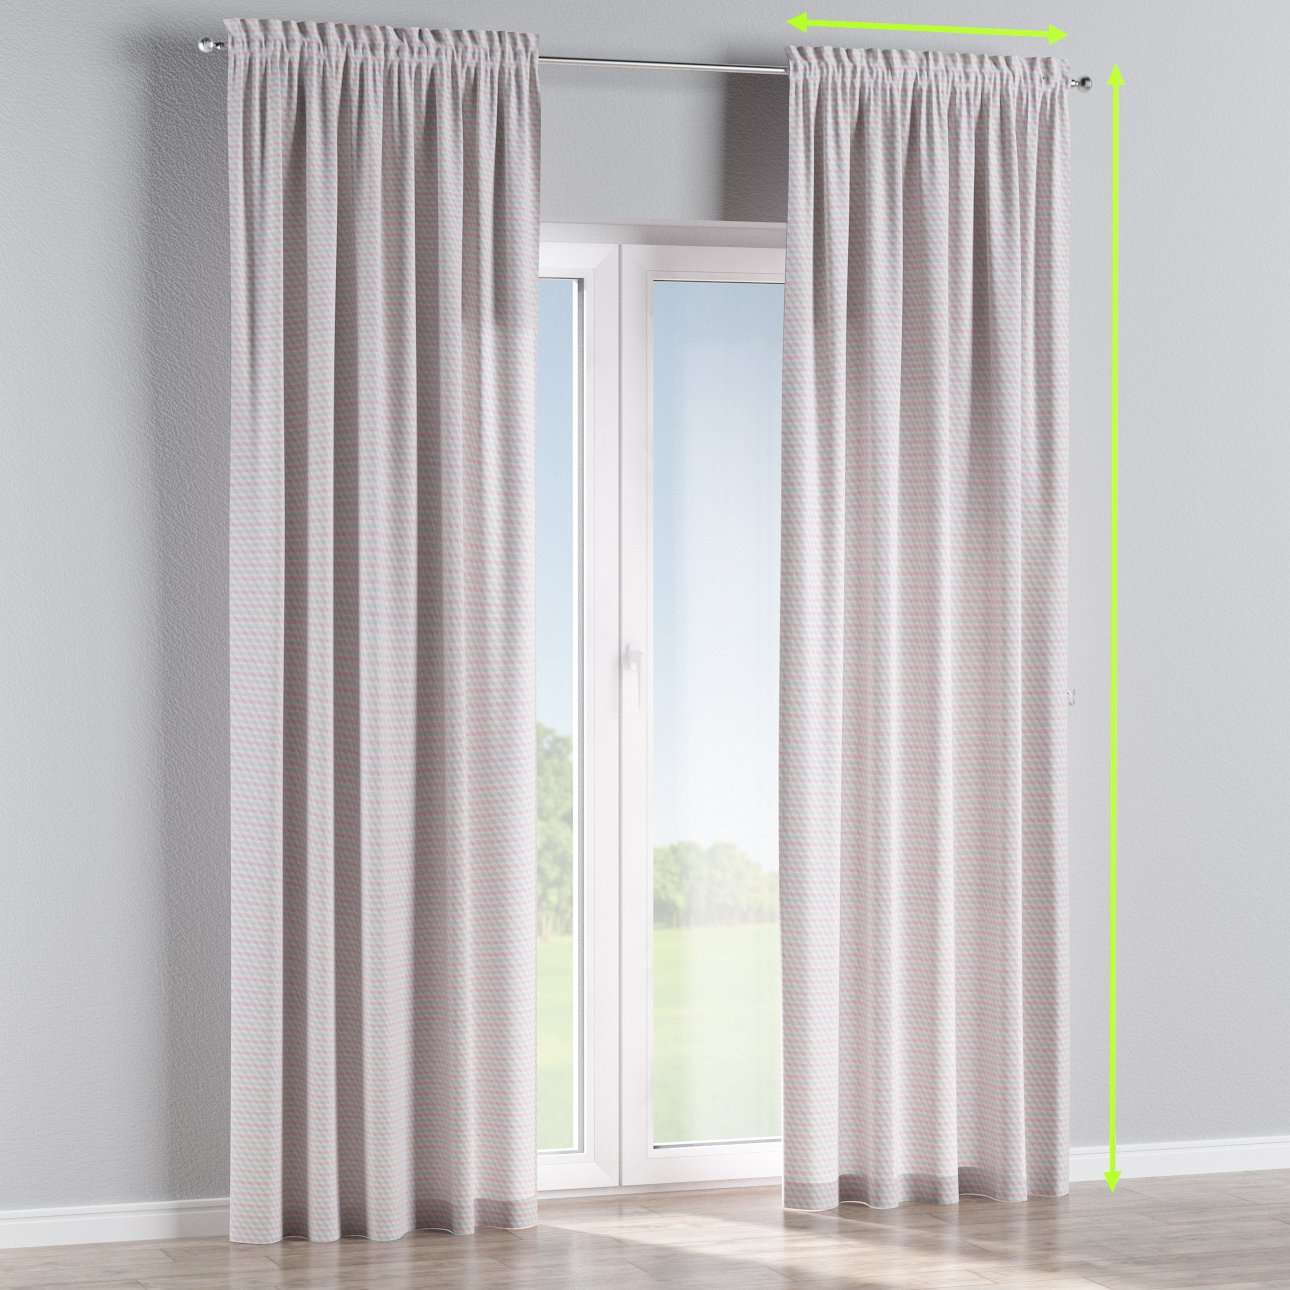 Slot and frill curtains in collection Rustica, fabric: 140-30